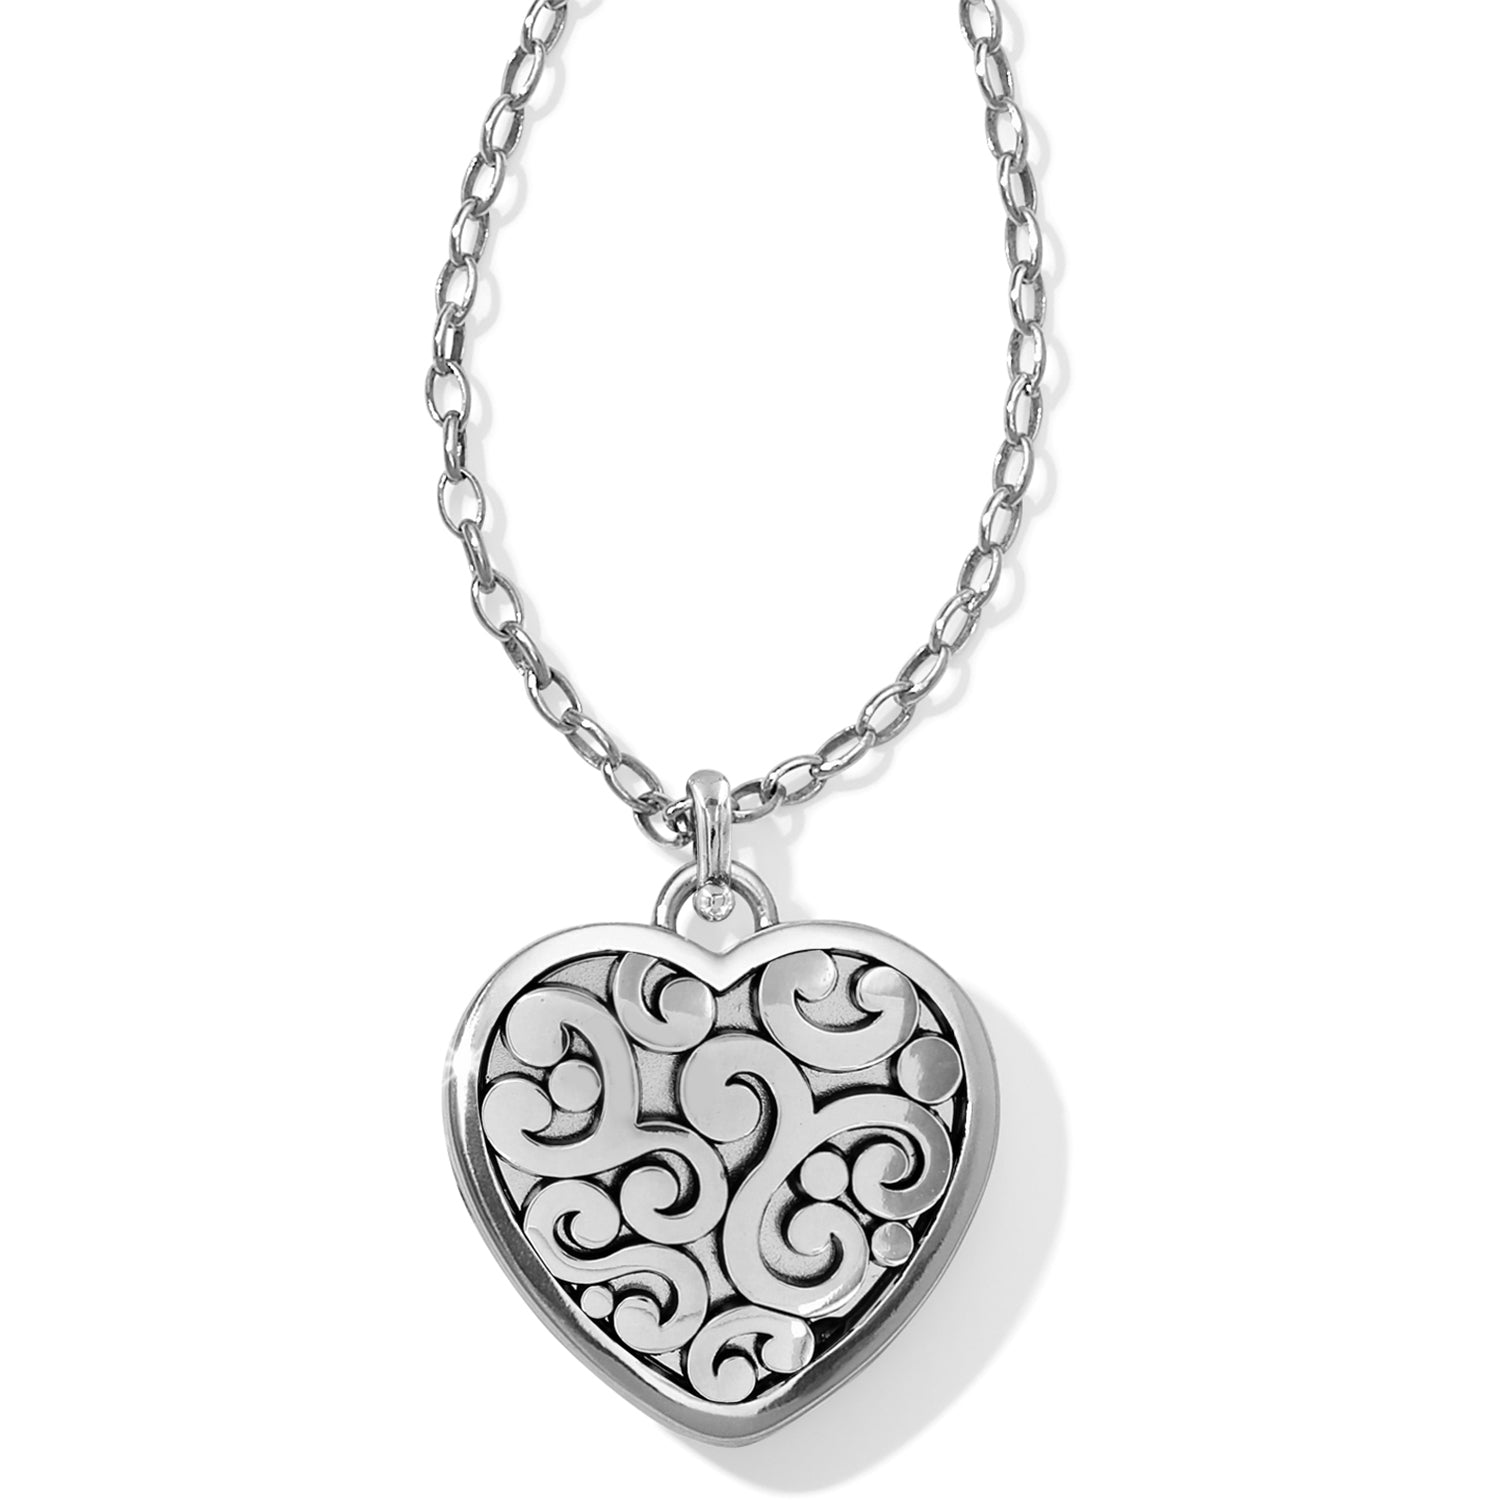 Brighton Jewelry Contempo Convertible Locket Necklace. With a nod to the romantic history of lockets, Brighton has created contemporary versions that are perfect for gifting (or getting!). What's more, you can upload and resize your photo using our online tool and we'll prepare your locket for you.